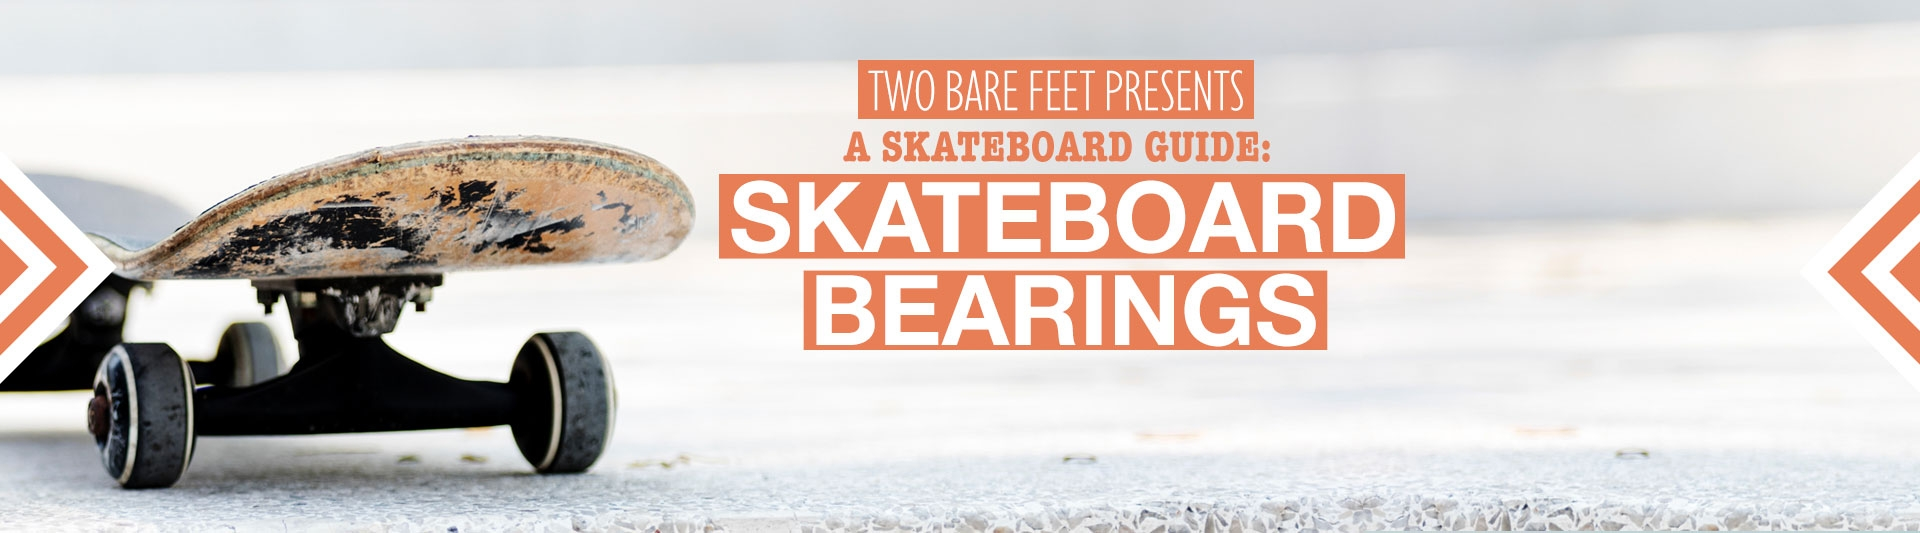 Skateboard bearings banner